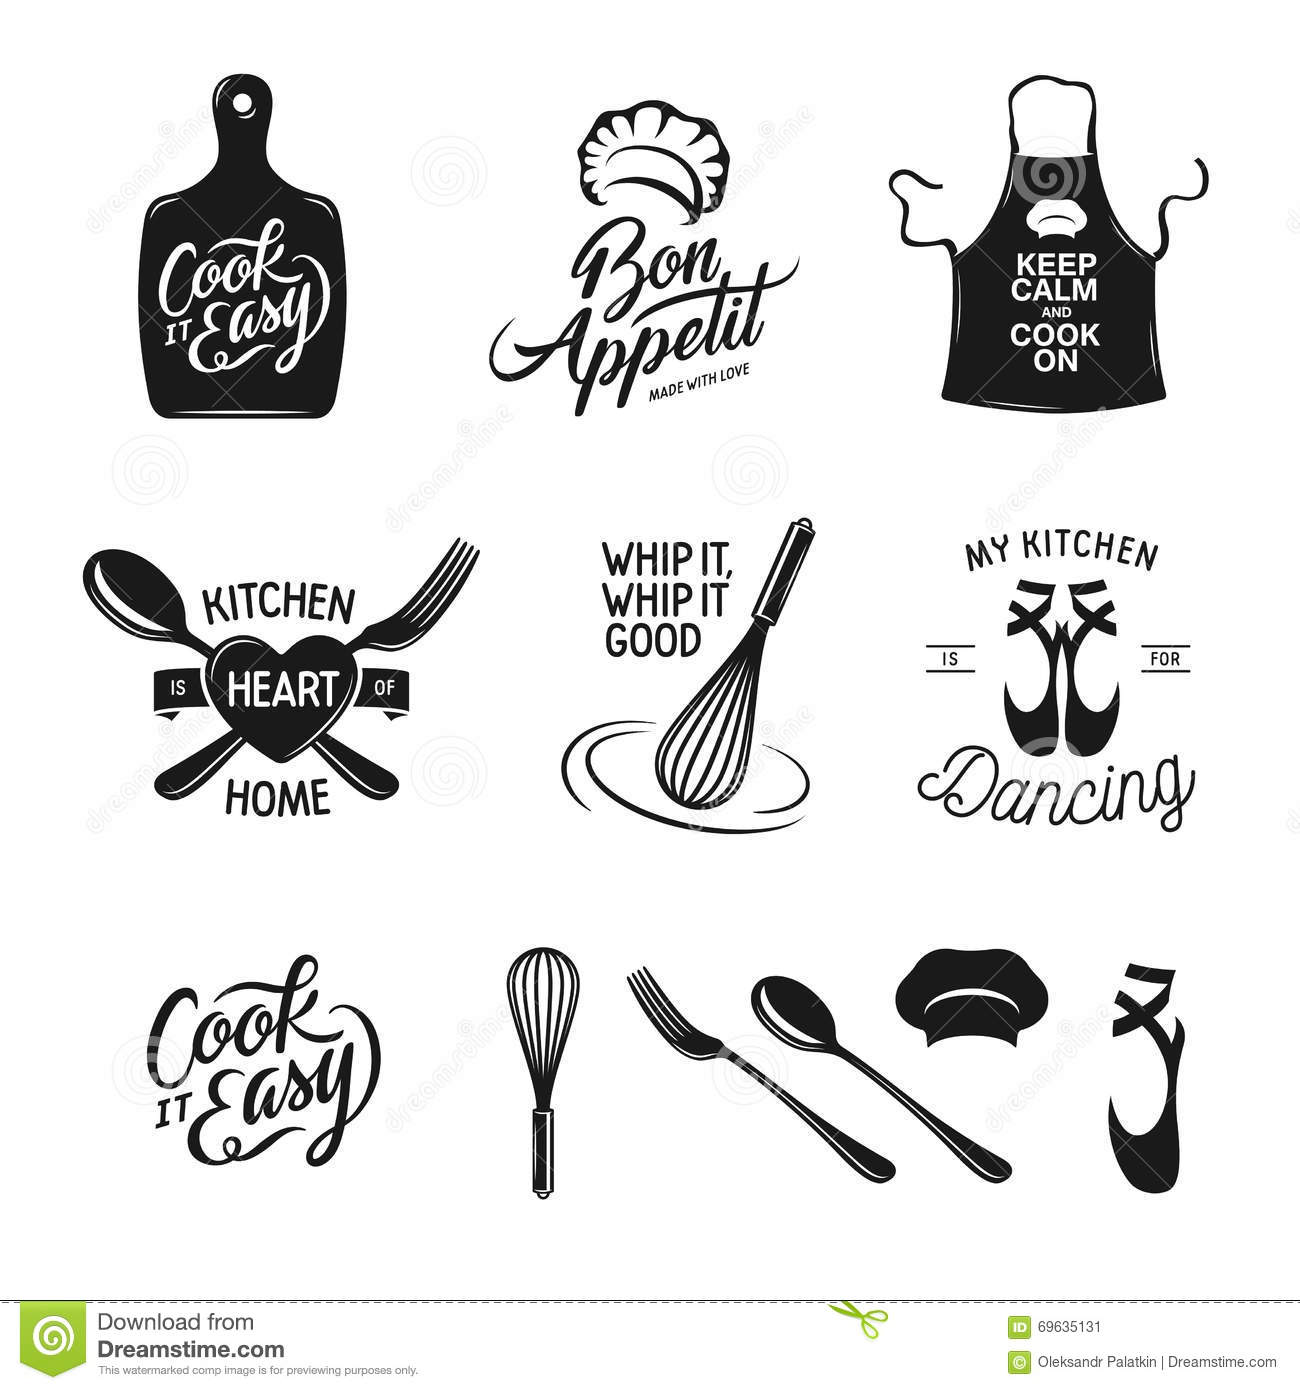 Thick thighs funny quote aprons A105401655 additionally Bbq stickers together with Bbq further Favorite Food Sayings besides Over reacted. on funny bbq chef